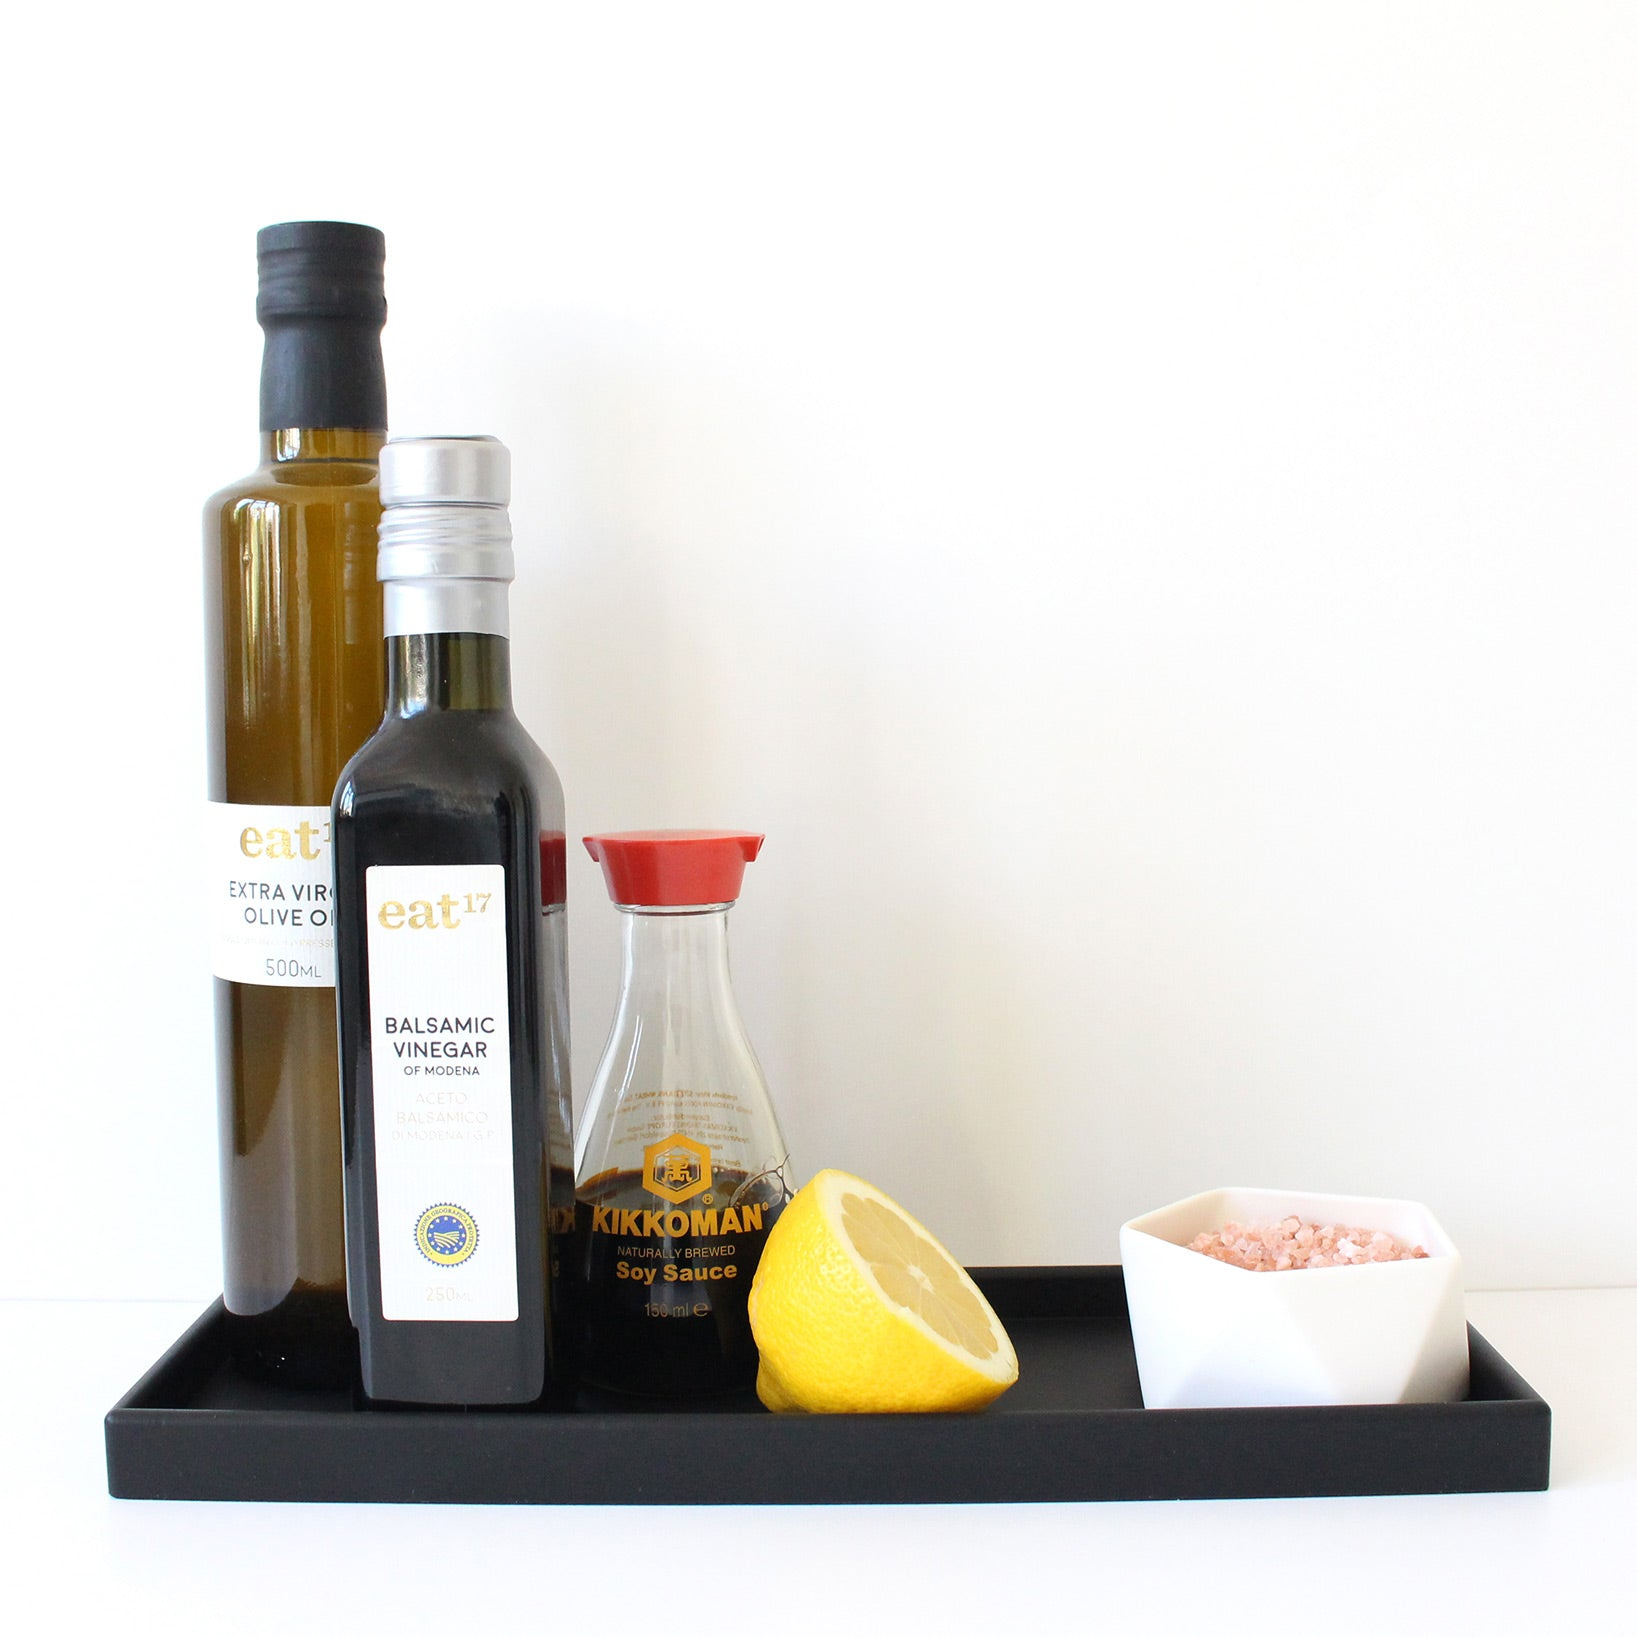 Black rubber kitchen tray with condiments